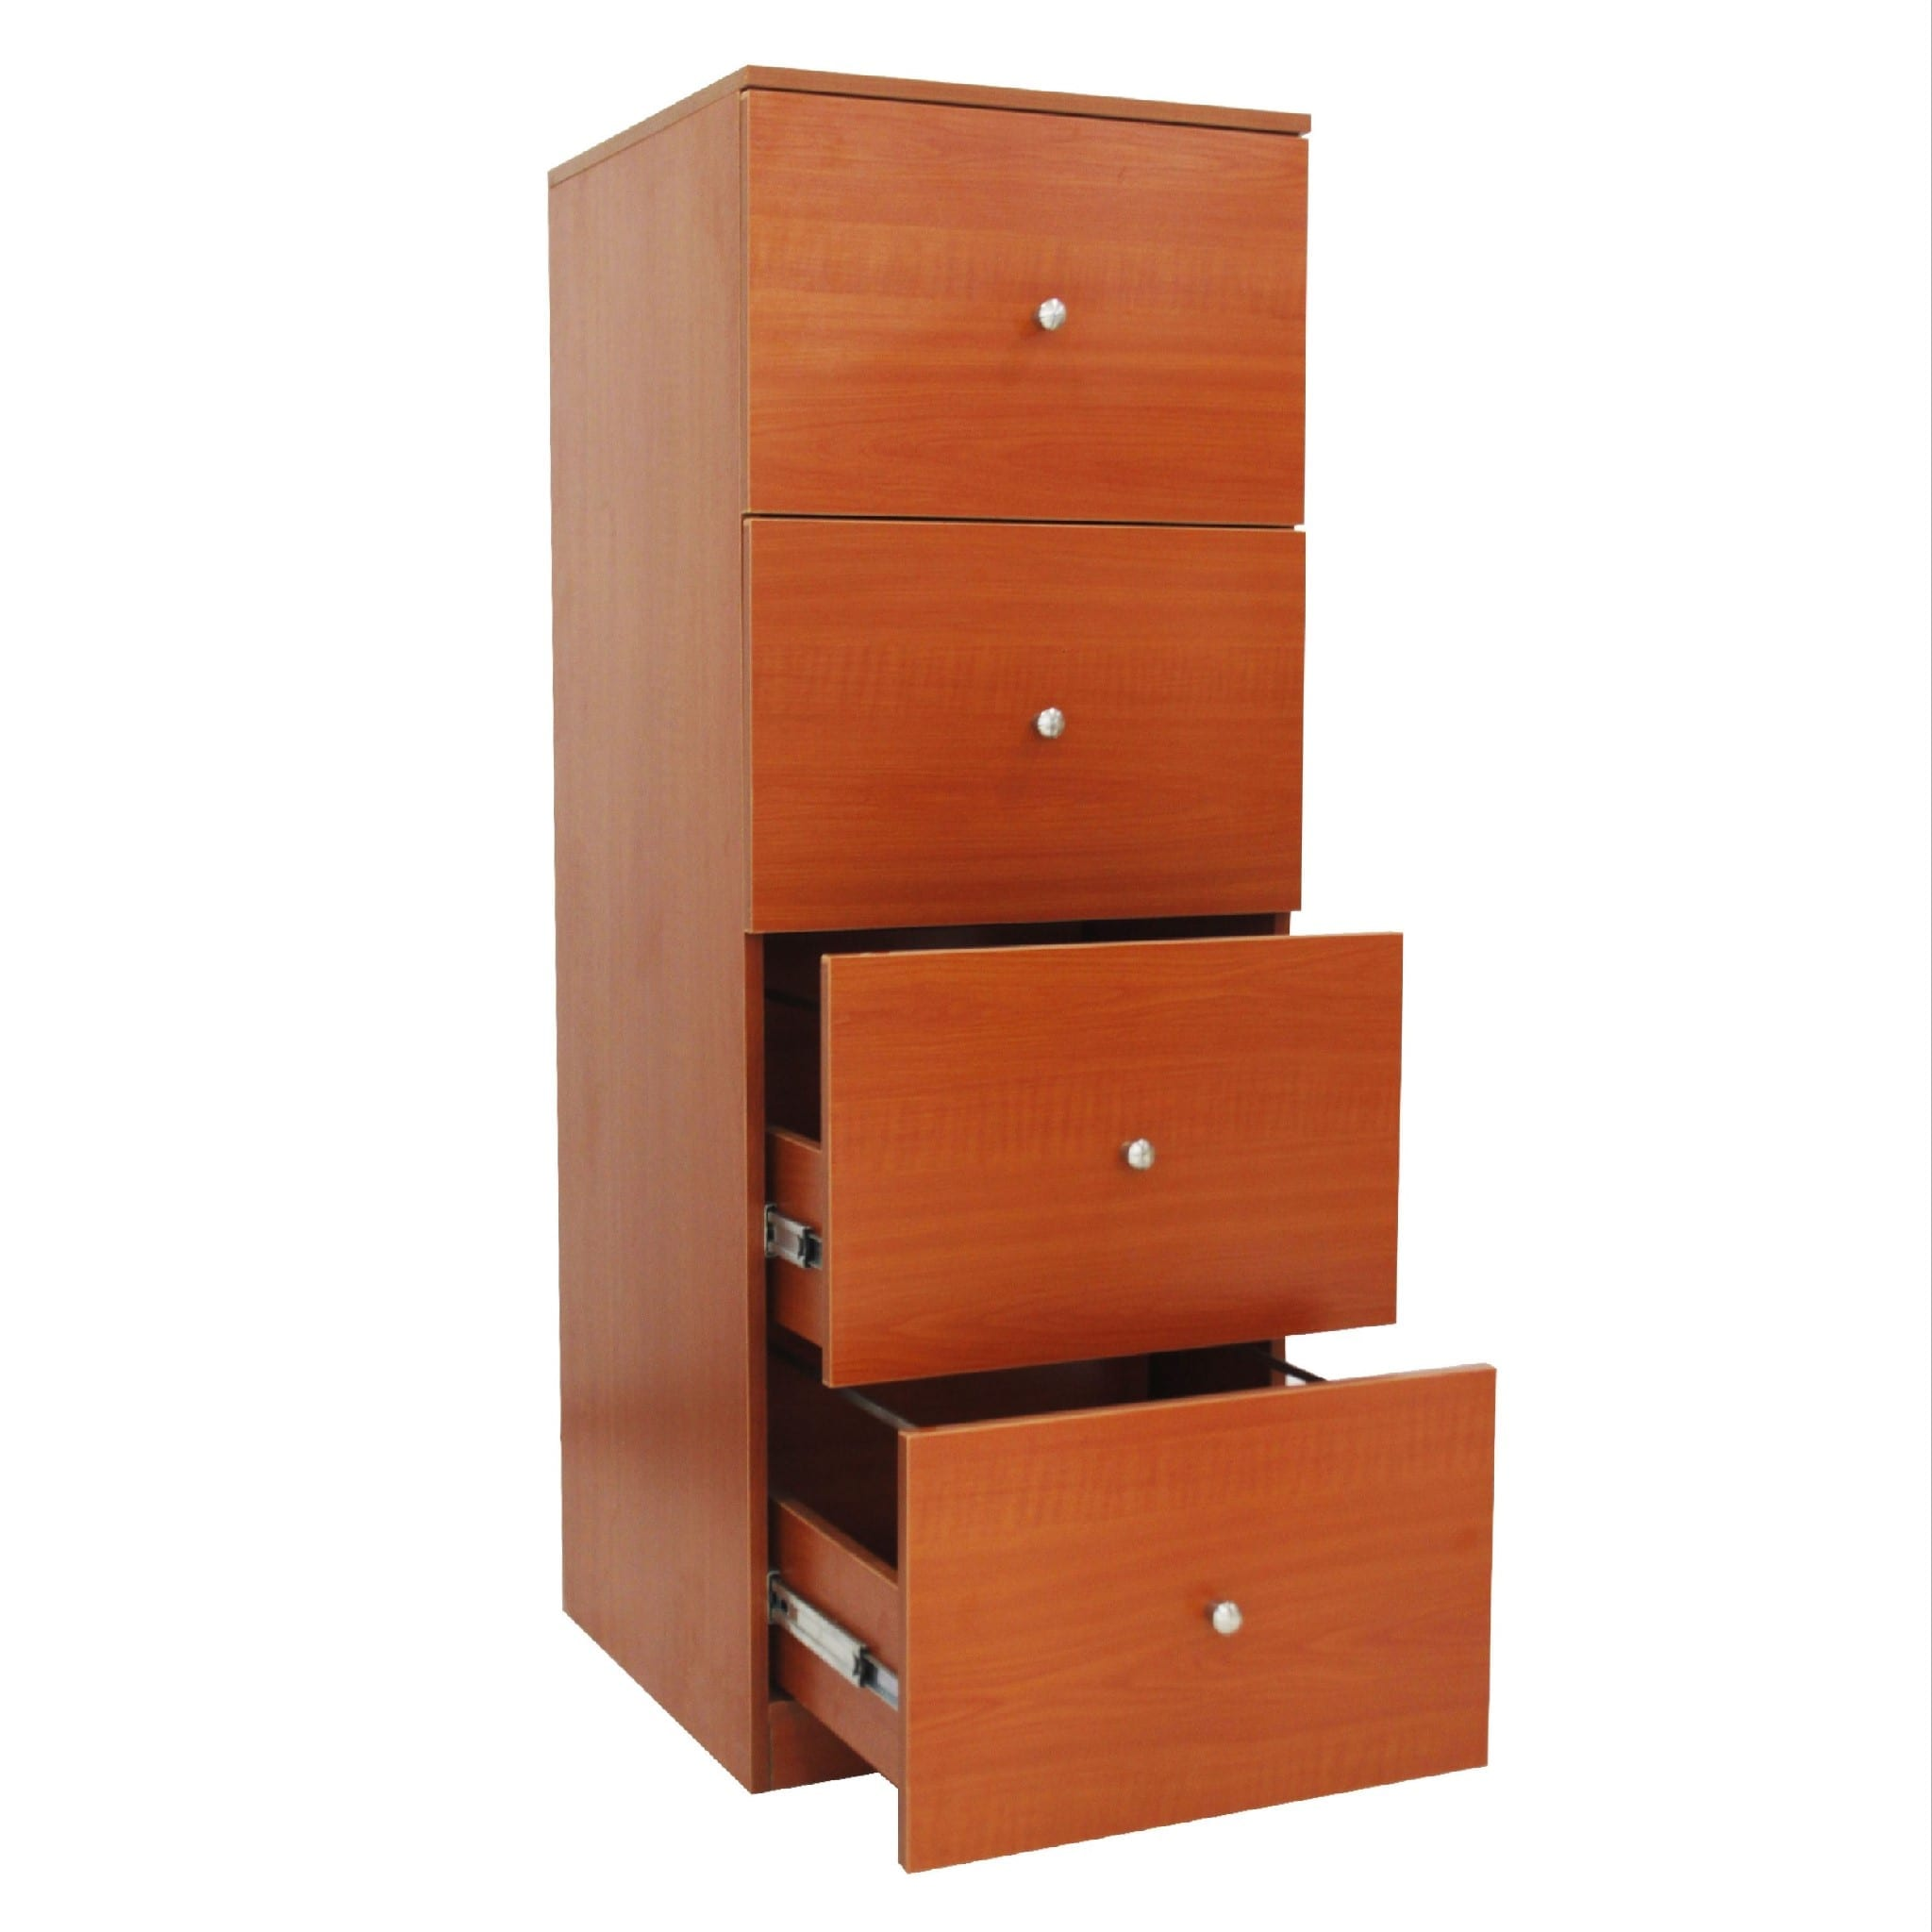 hangers free personal at file cabinet getdrawings for use com pedestal mobile drawing